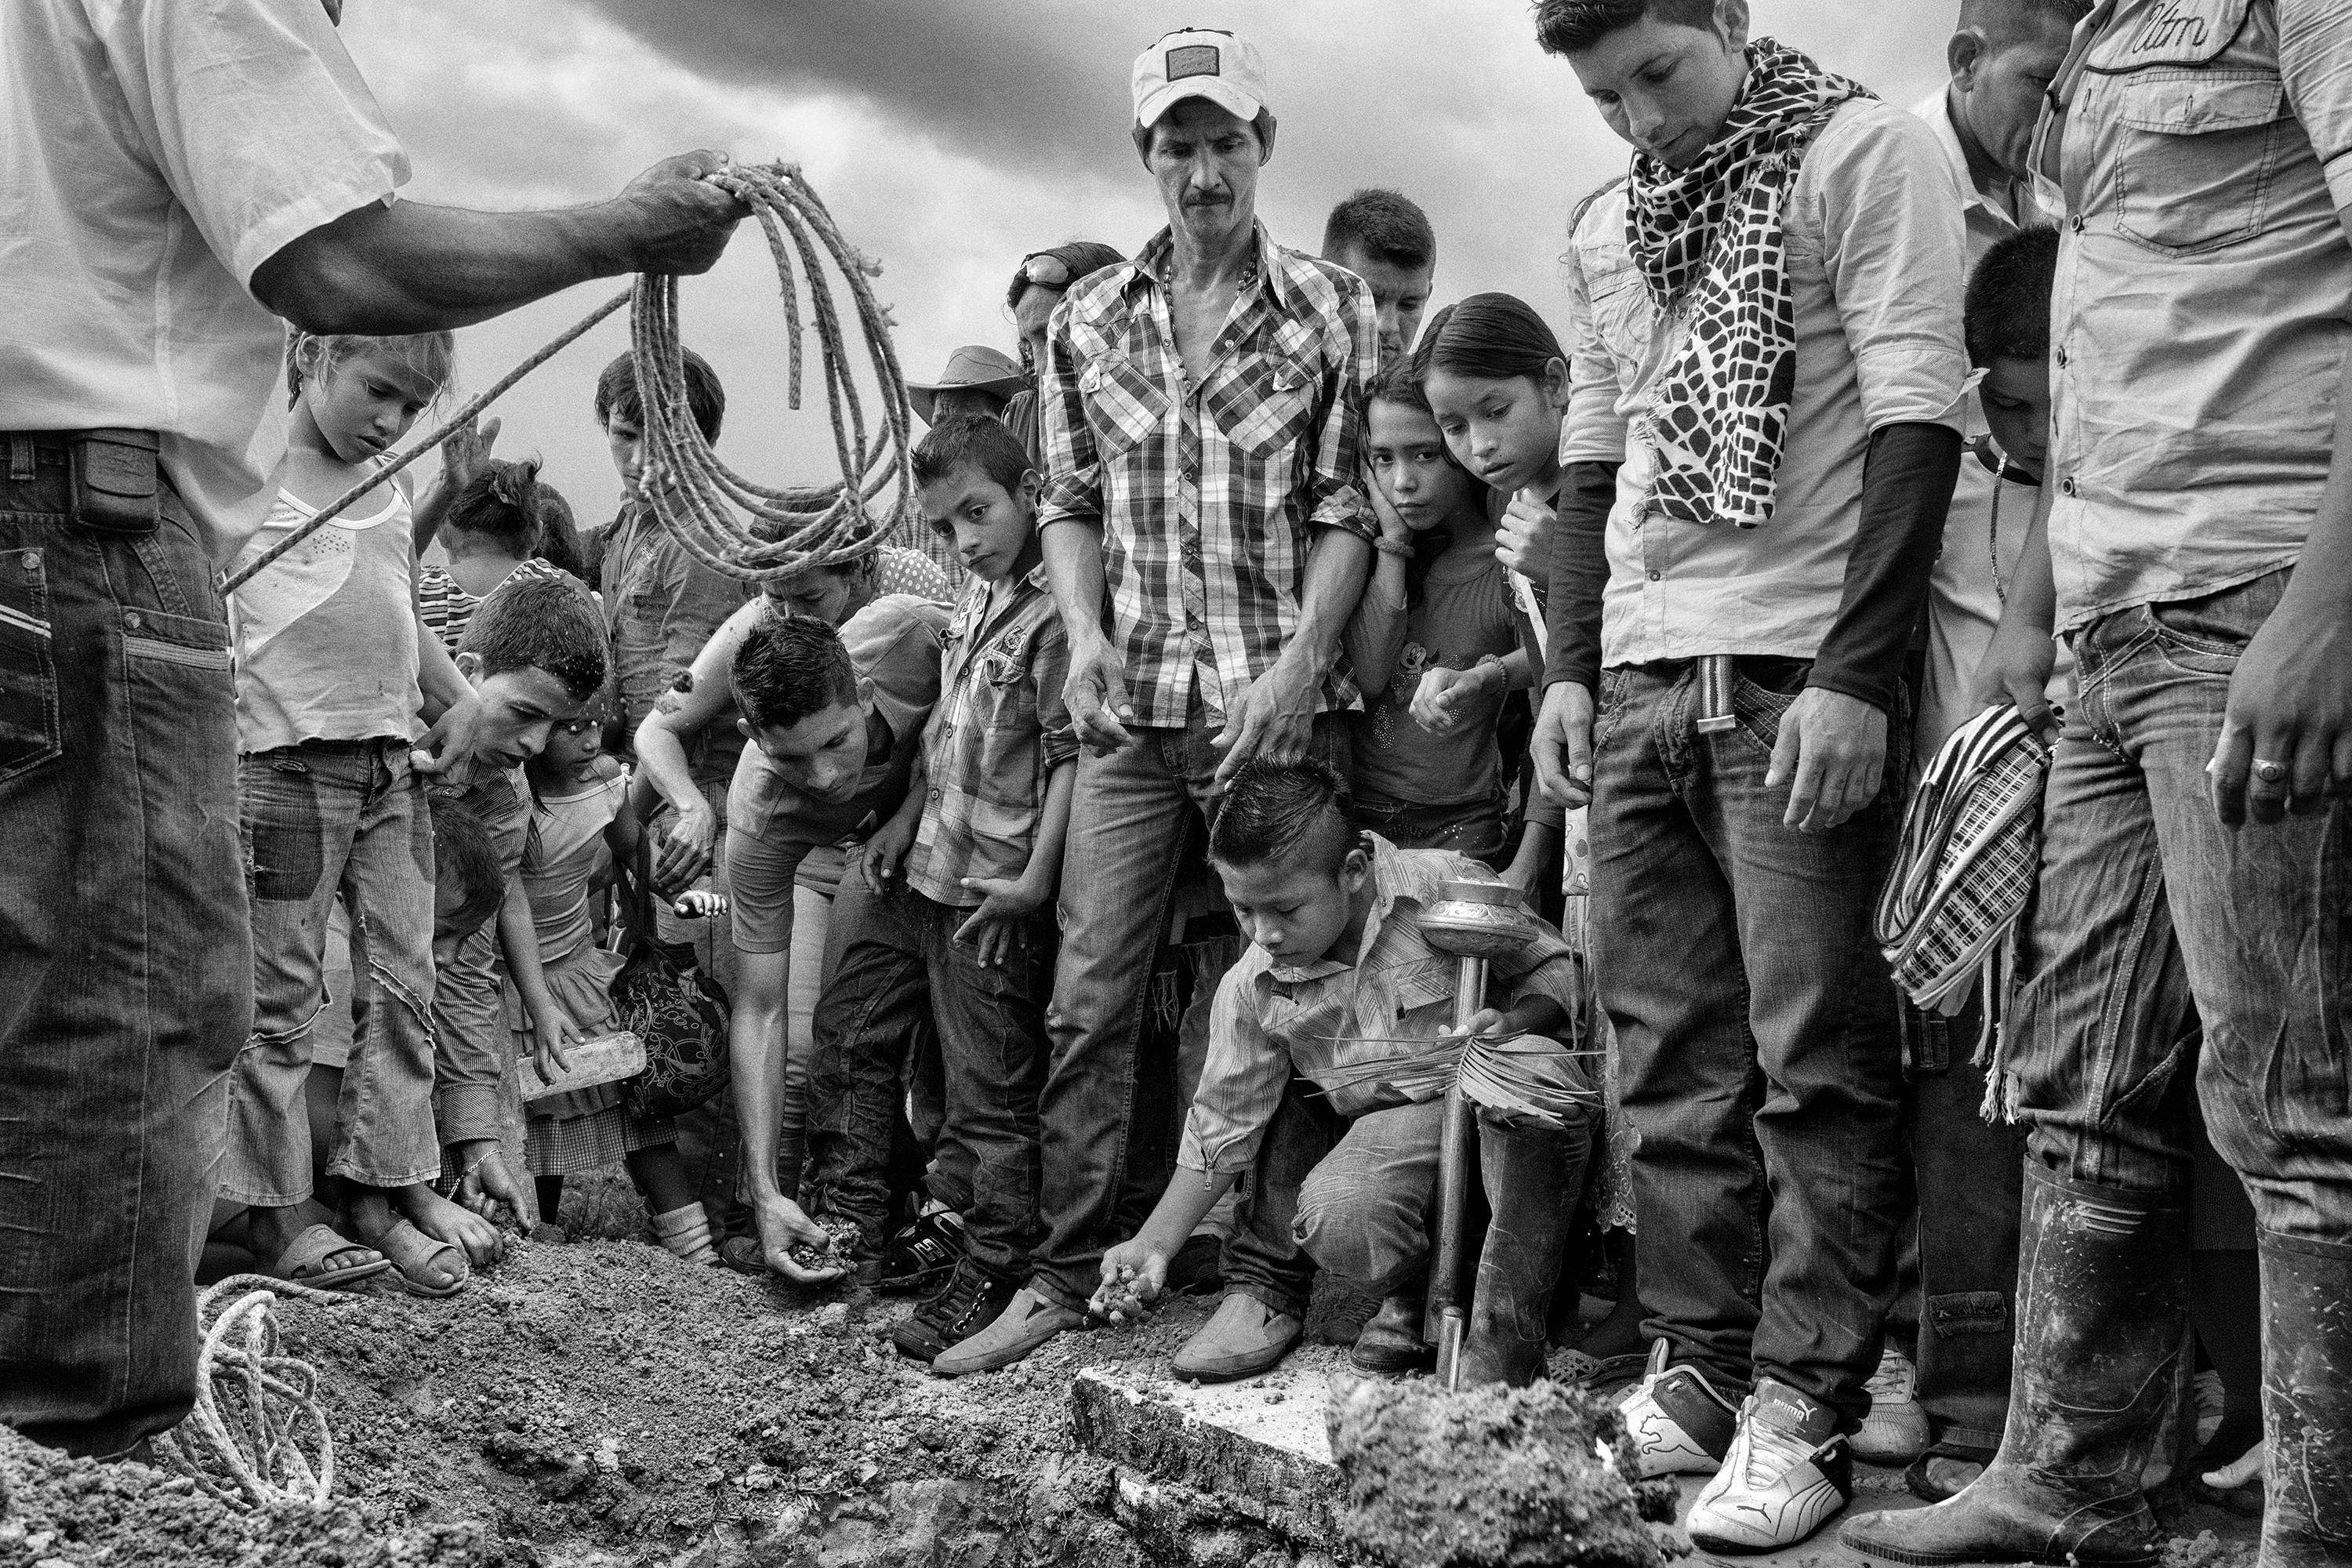 Family and friends gather for the funeral of 18-year old Benjamin, who died during a fight with guerrillas, Nov. 2013, La Unión Peneya, Caqueta, Colombia.   FARC guerrillas are not the only armed group which operate in Colombia. The ELN guerrilla and paramilitary groups also control vast areas of territory, applying their own laws and acting as the only authority.